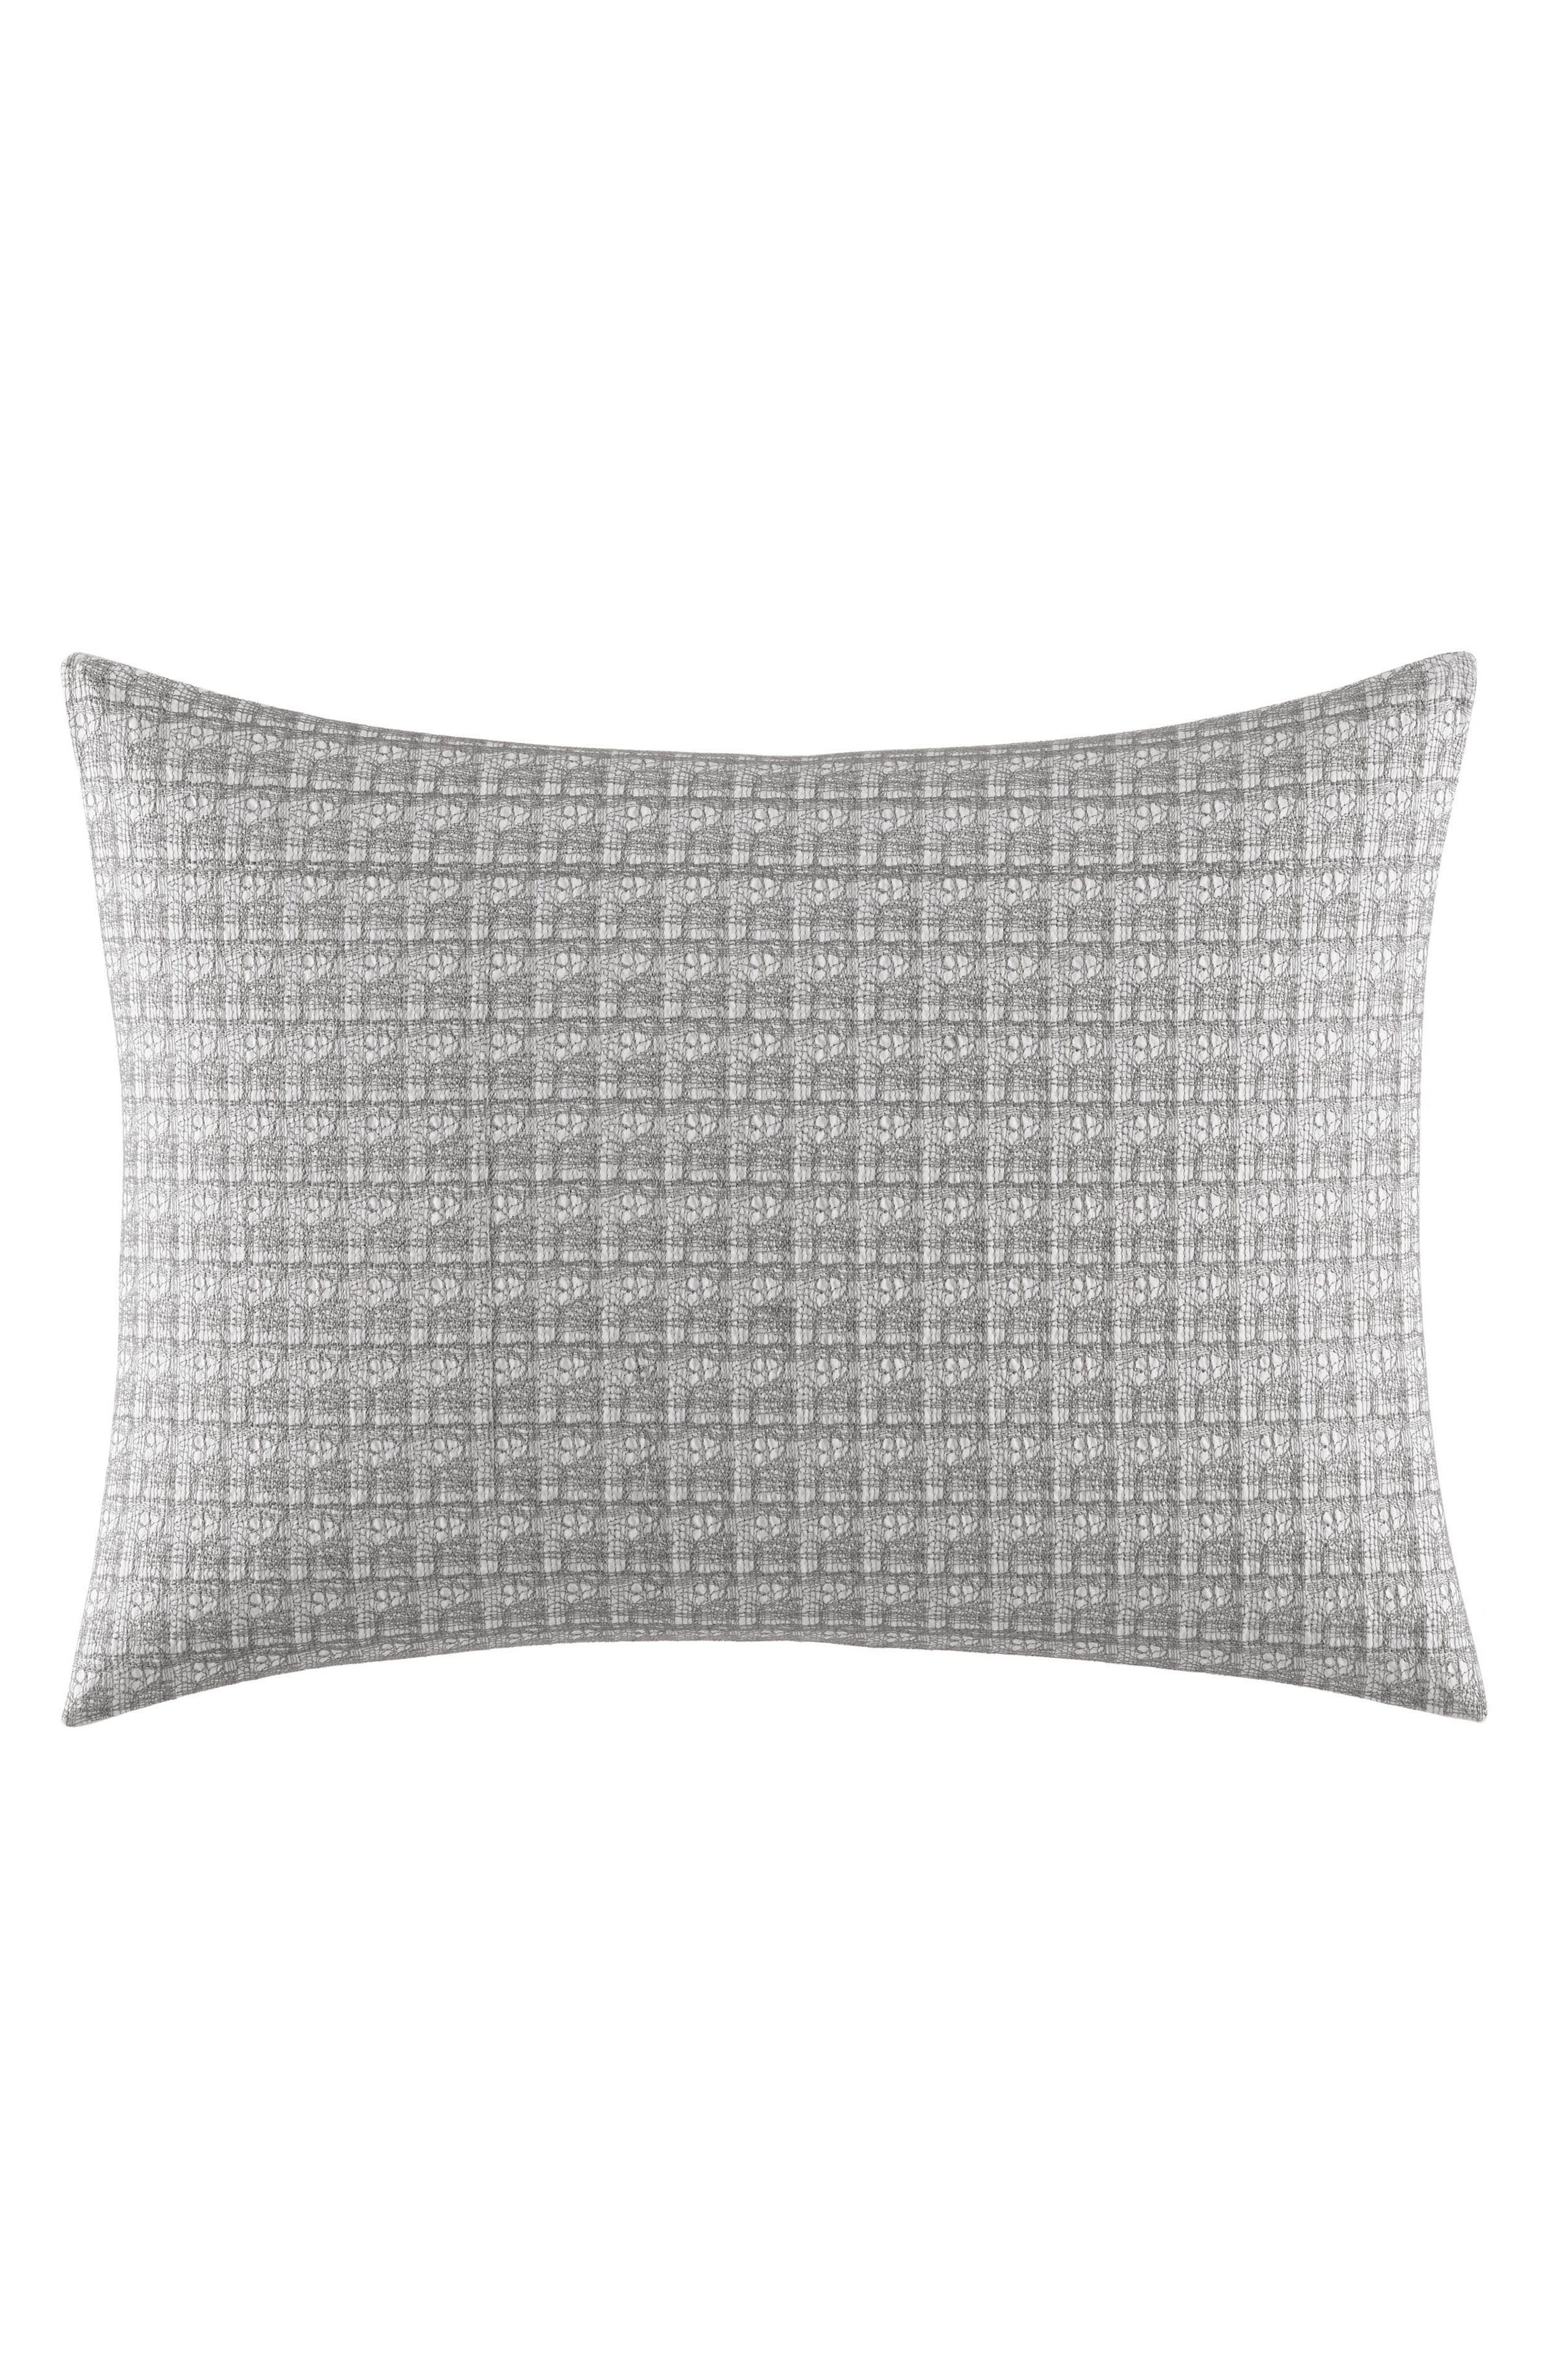 Mirrored Breakfast Accent Pillow,                             Main thumbnail 1, color,                             020